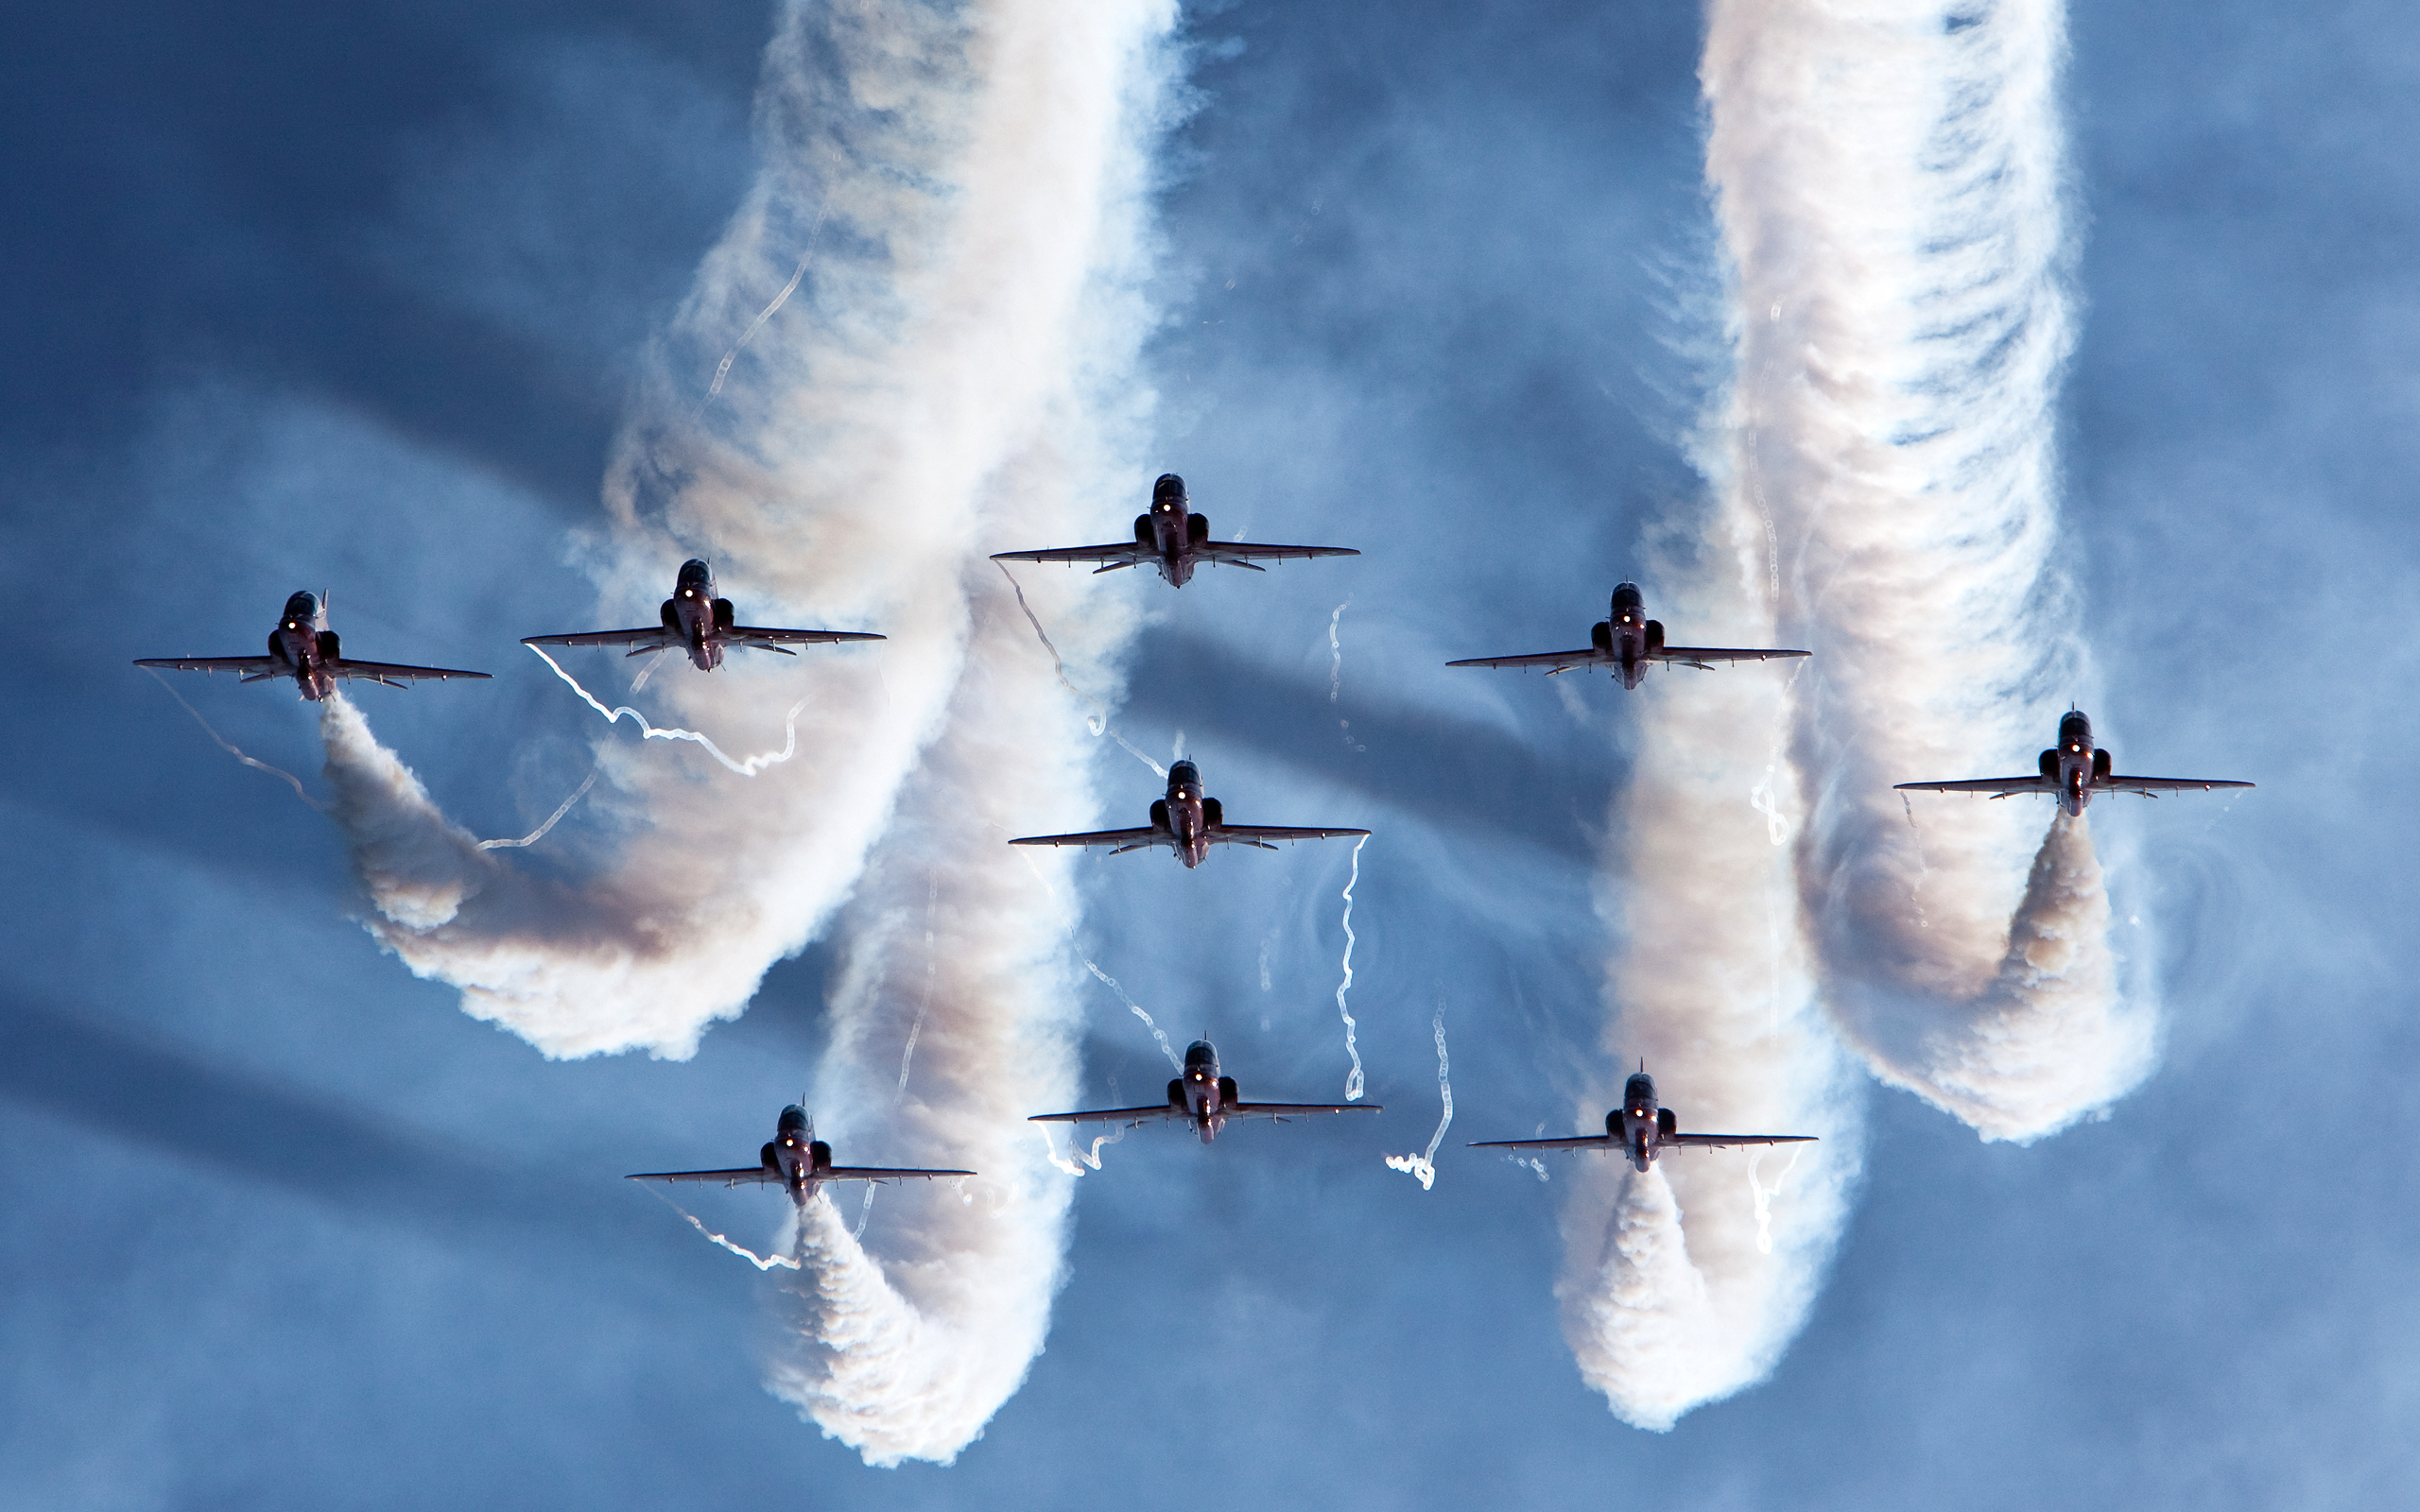 Royal Air Force Aerobatic Team 254.73 Kb